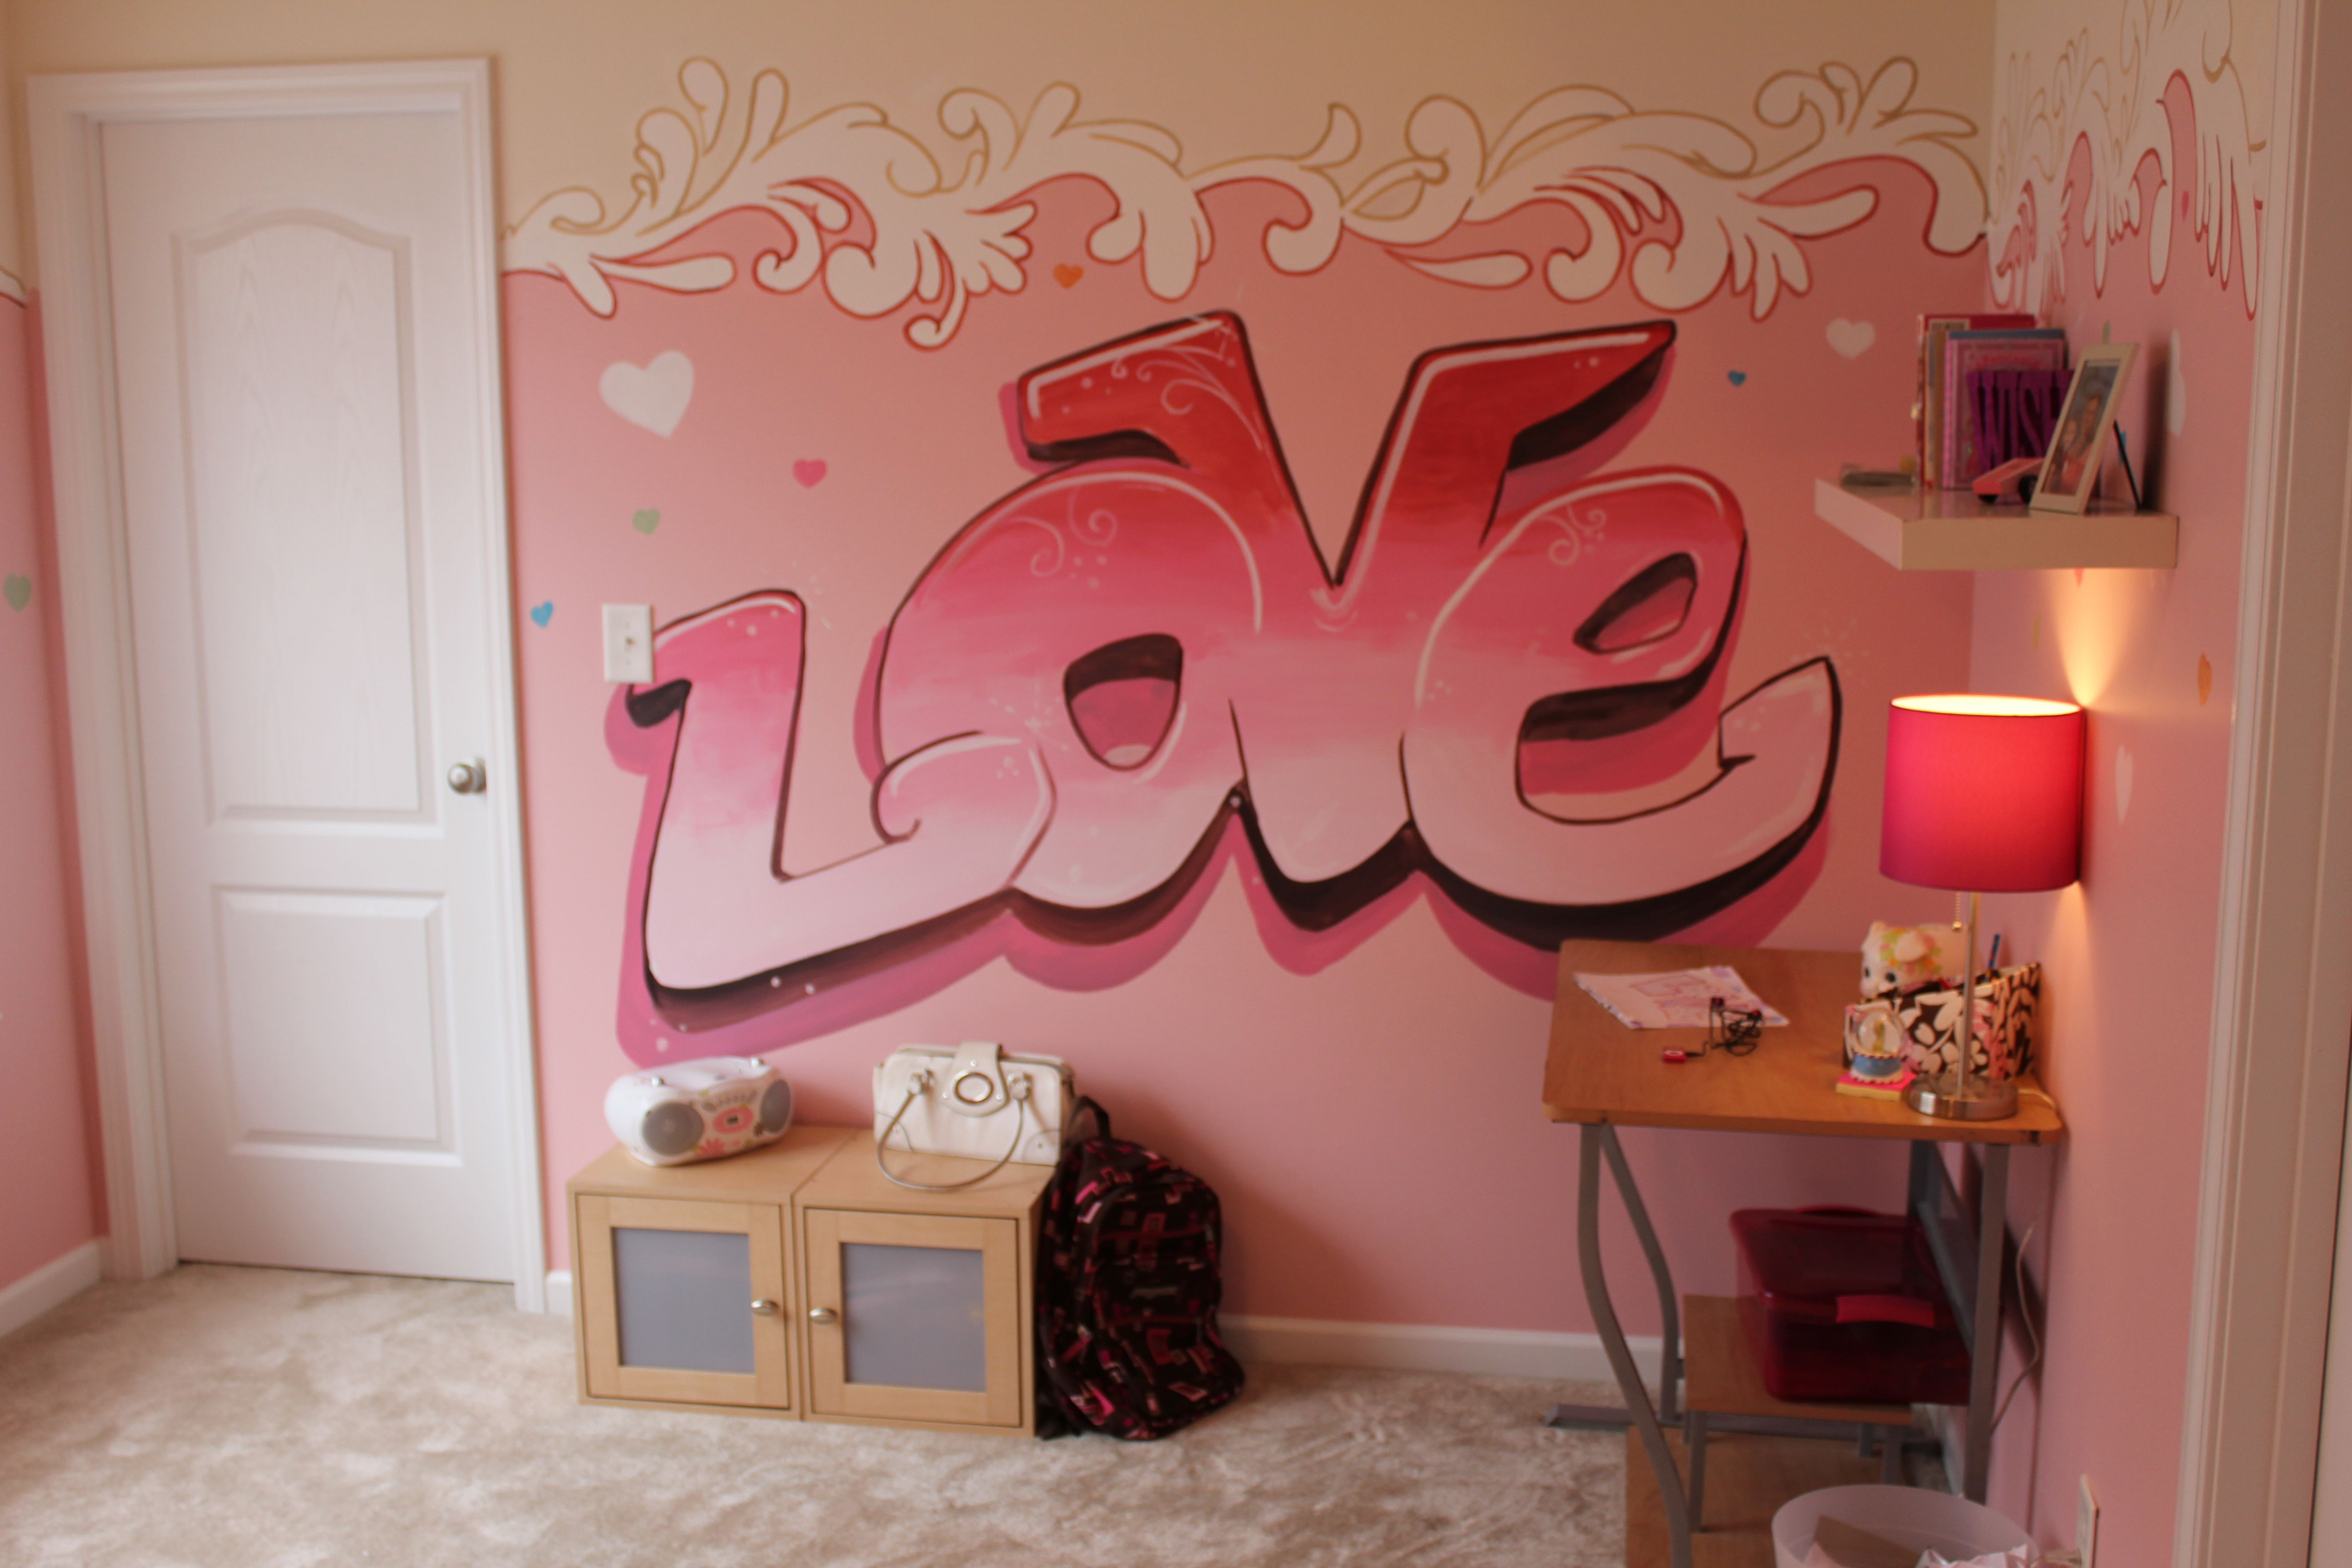 Wall paint colors for girls bedroom - Graffiti Murals For Bedrooms Girls Girls Bedroom Ideas 5184x3456 Decorative Paint Designs Green Apple